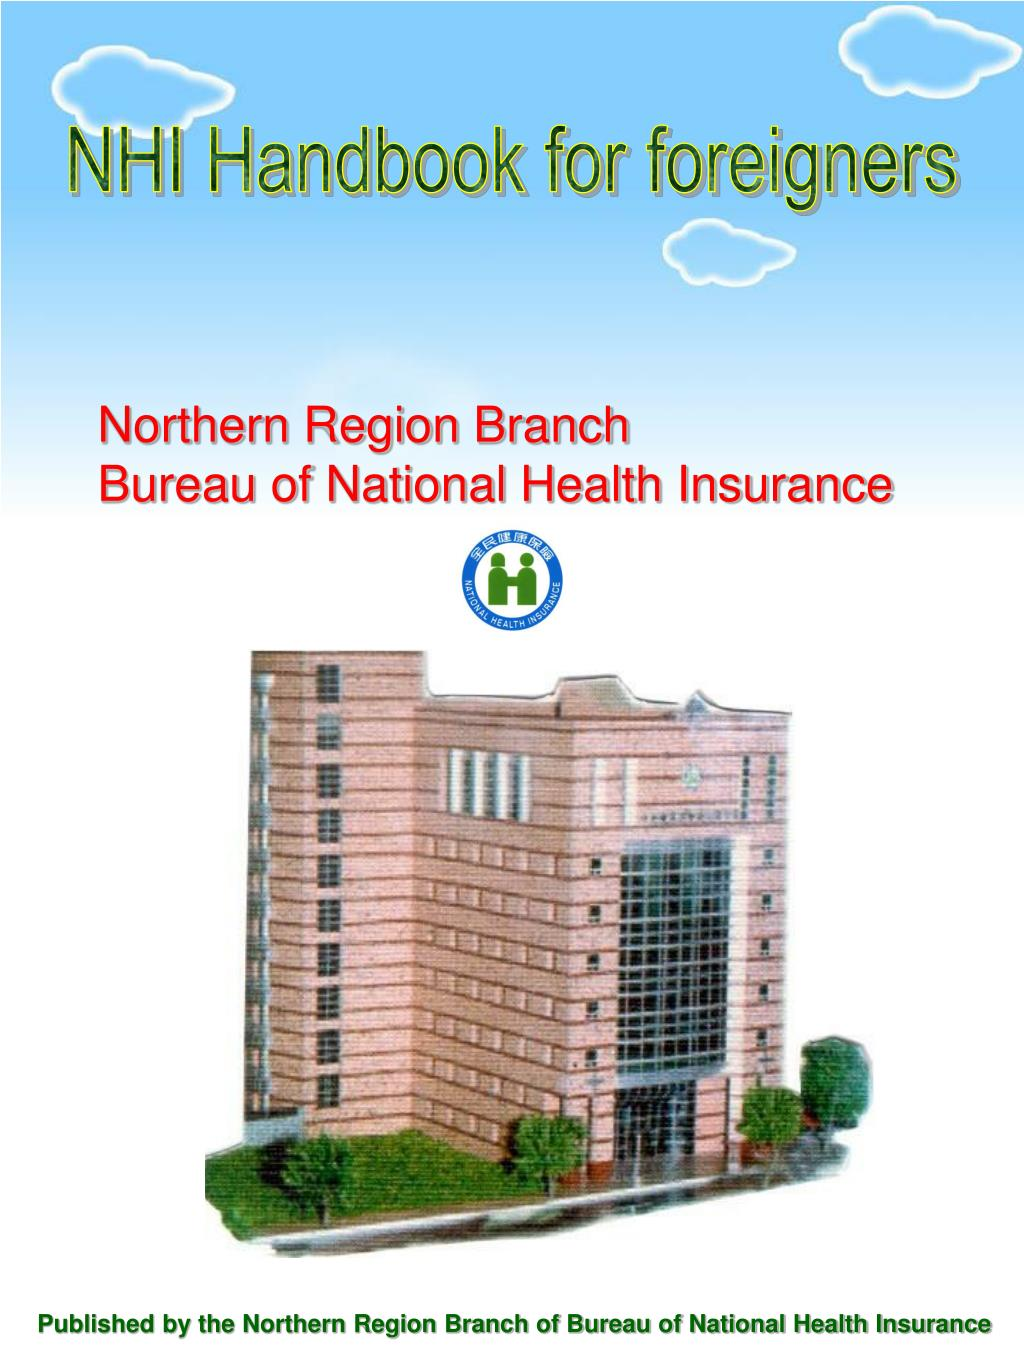 NHI Handbook for foreigners